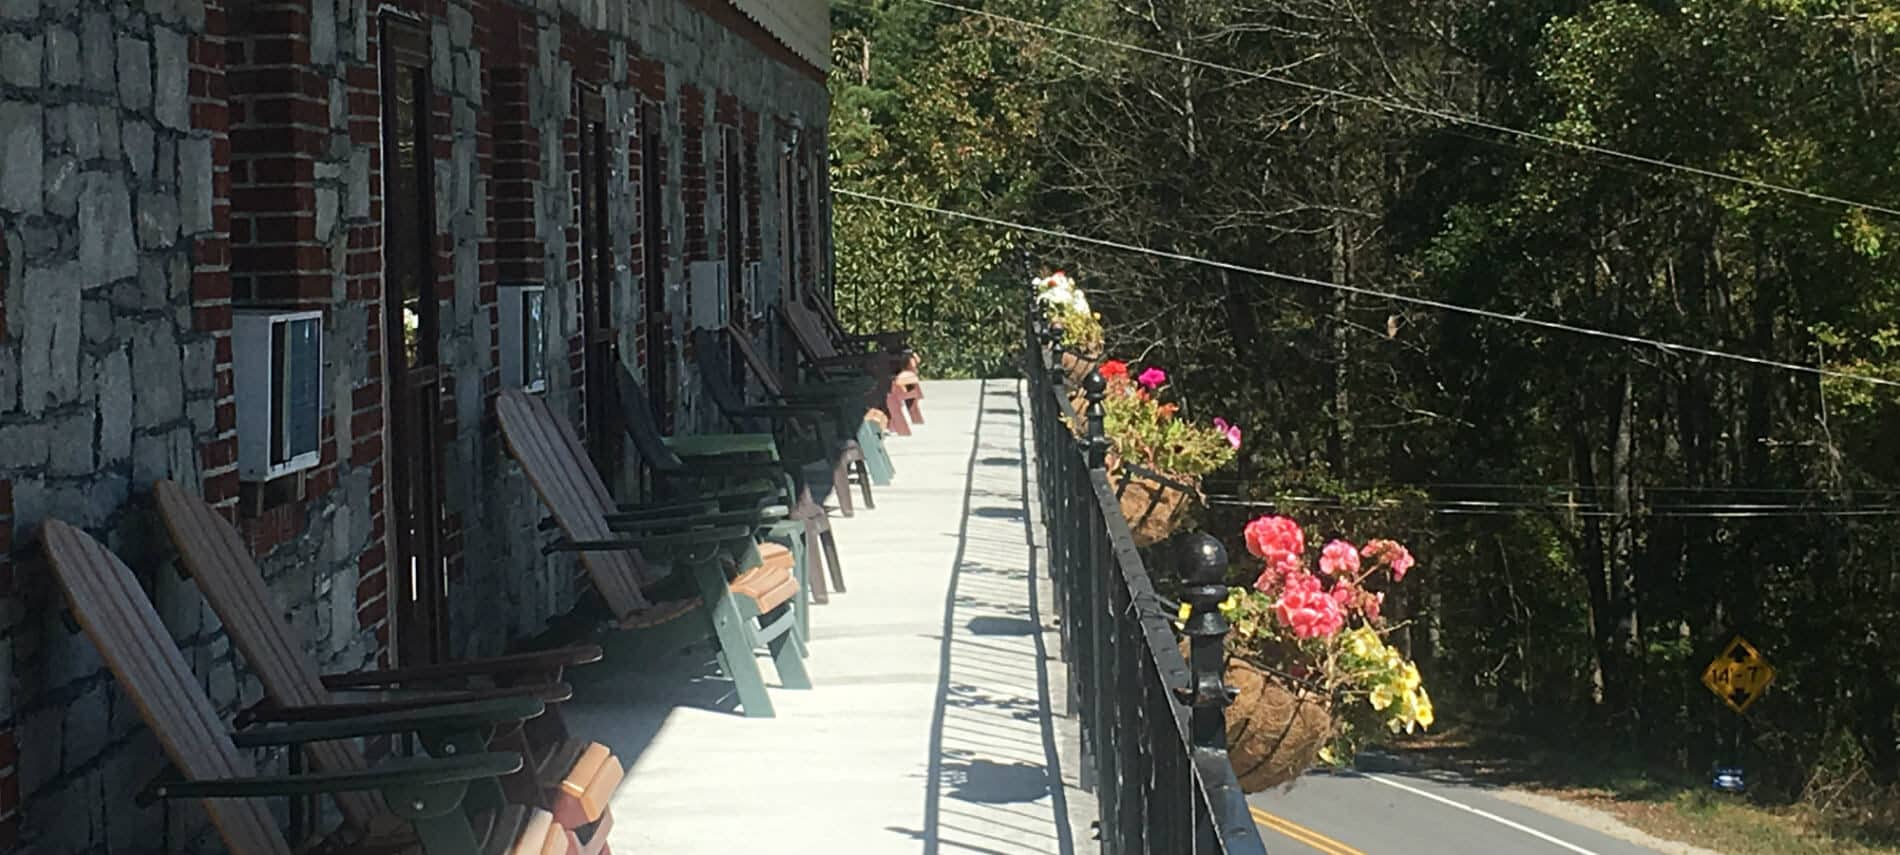 Upper balcony of the inn lined with adirondak chairs and flower baskets surrounded by trees